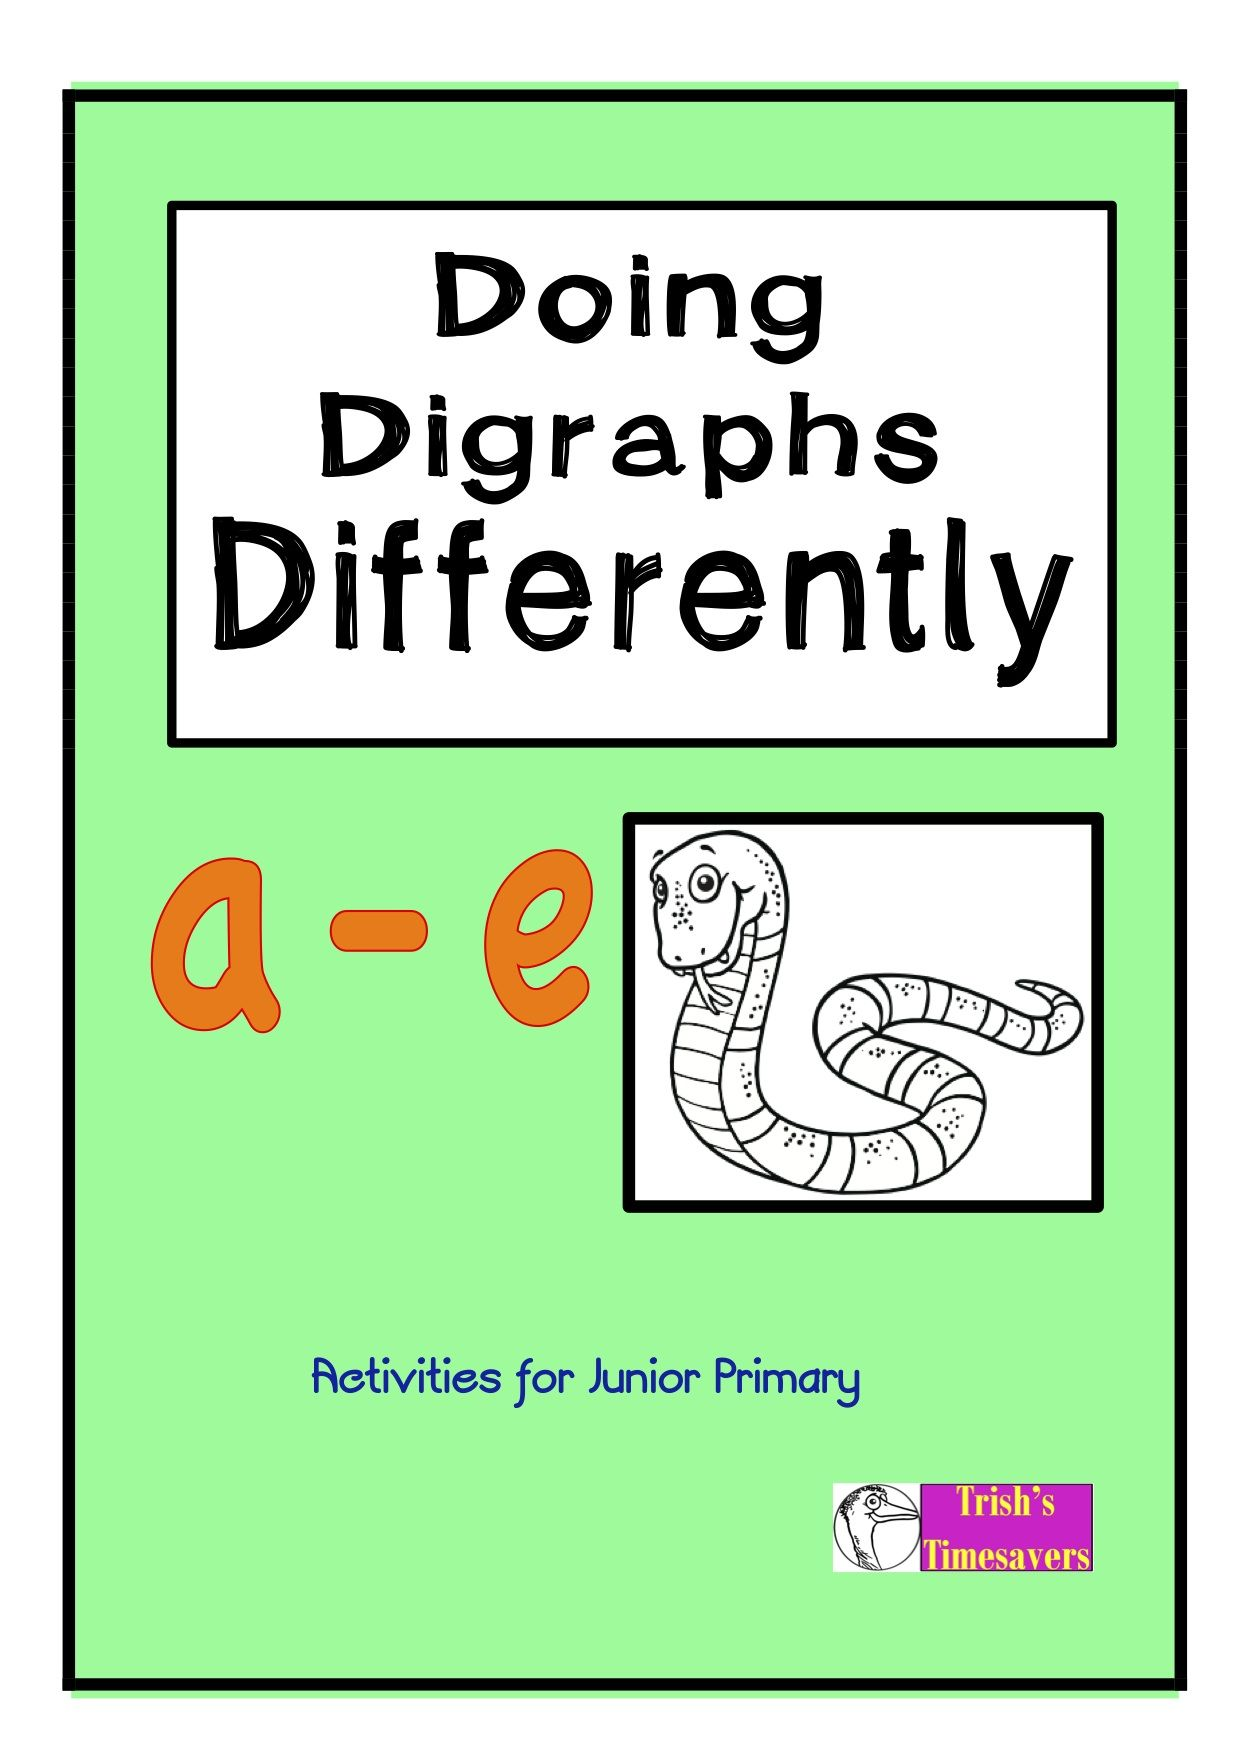 Doing Digraphs Differently A E Concentrates On The Digraph